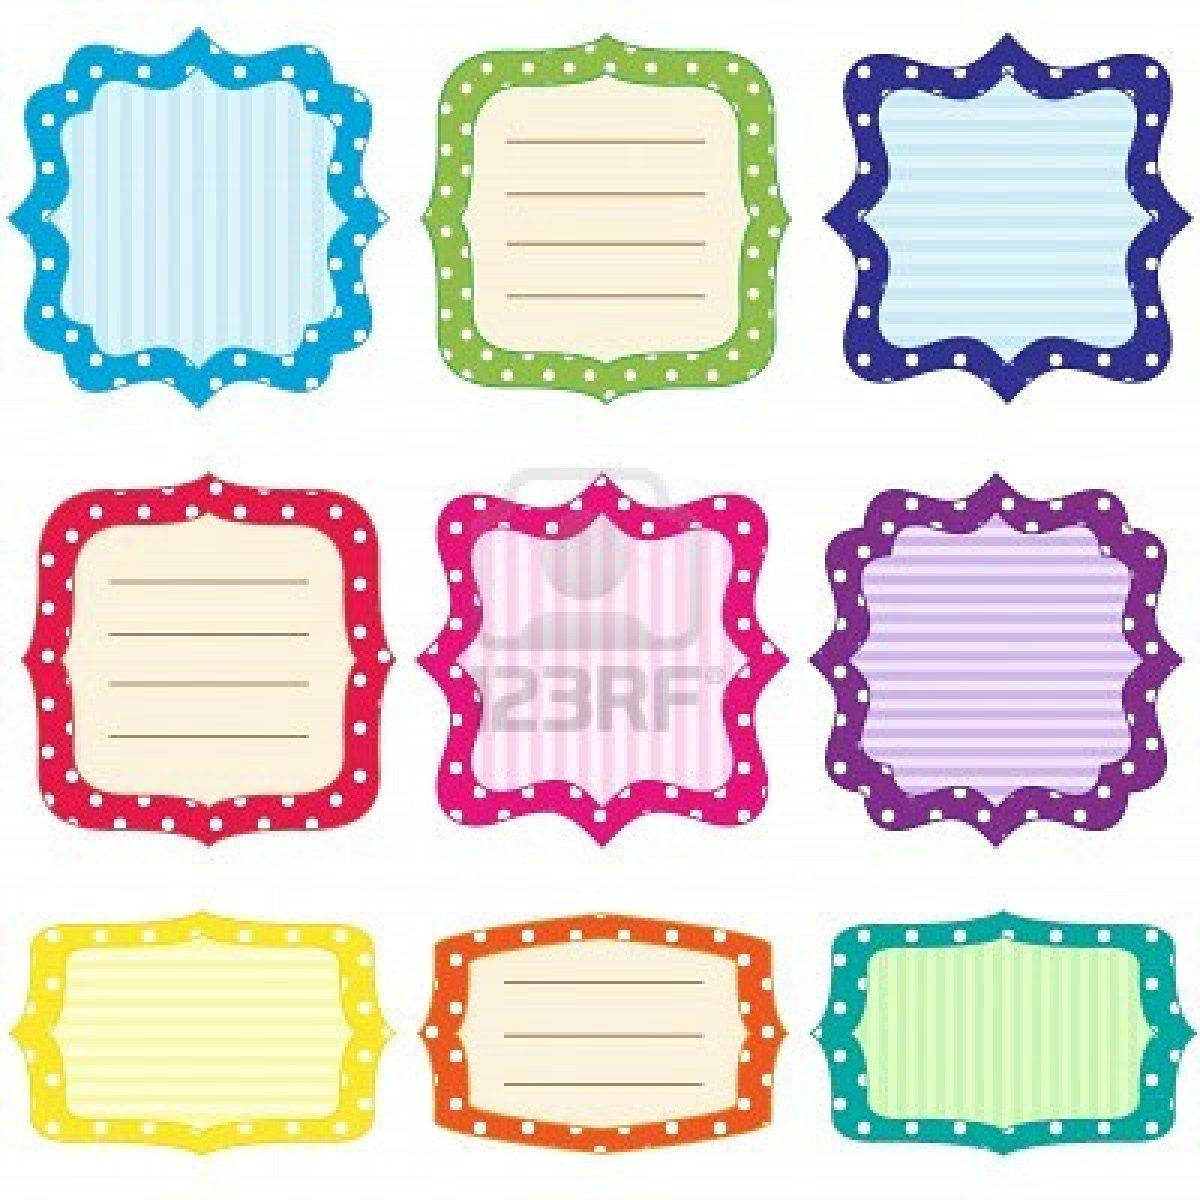 free printable polka dot name tags the template can also be used